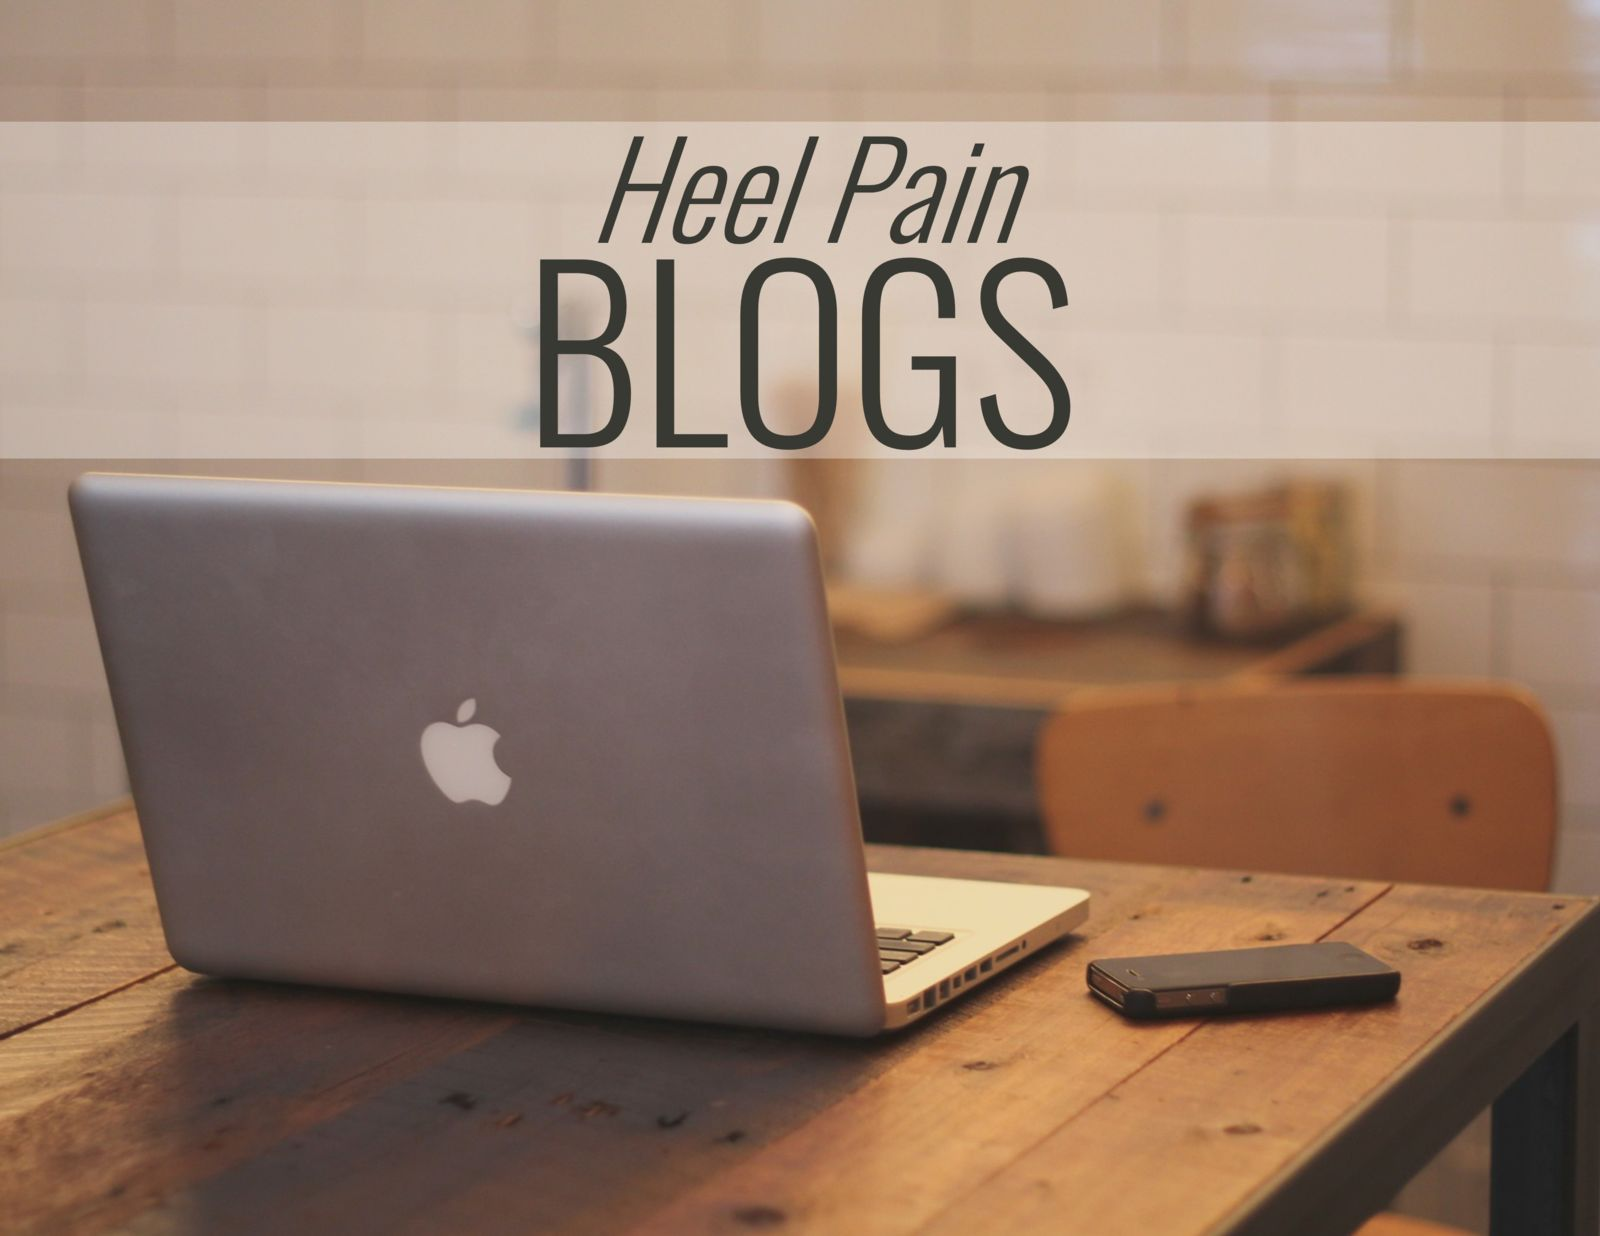 computer on a desk and words: Heel Pain Blogs